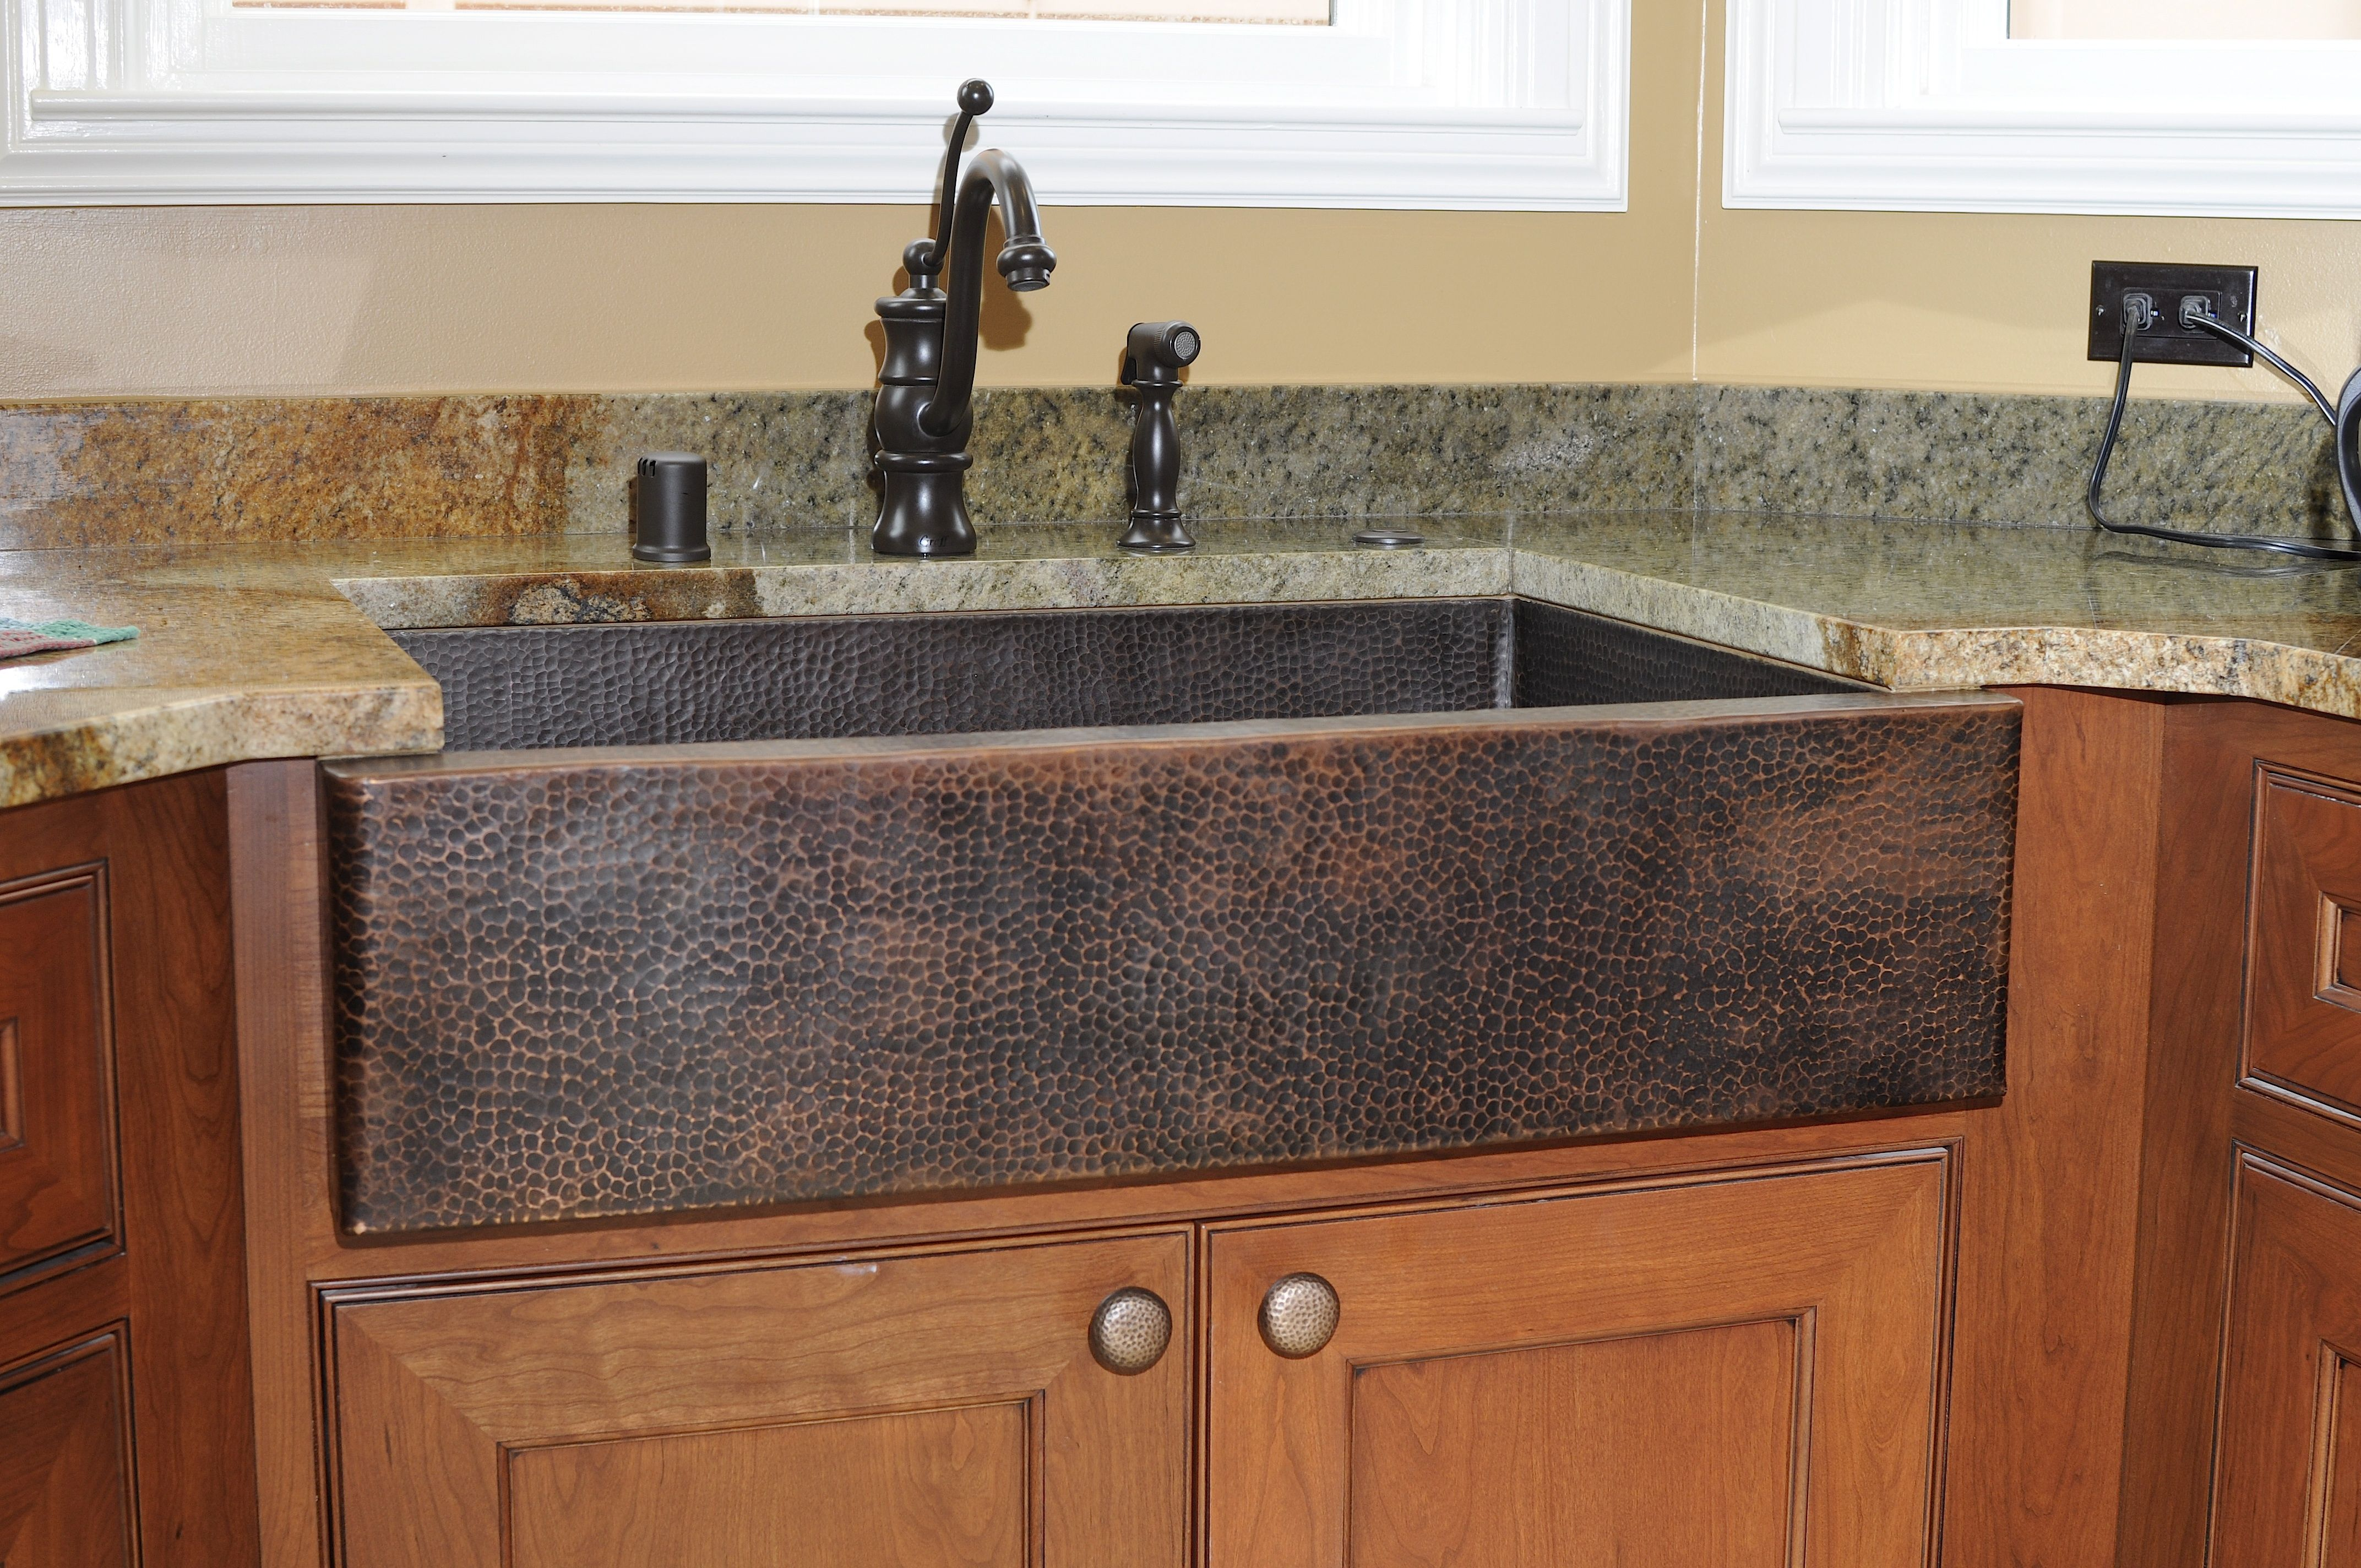 Facts to Consider when Shopping for Copper Sinks